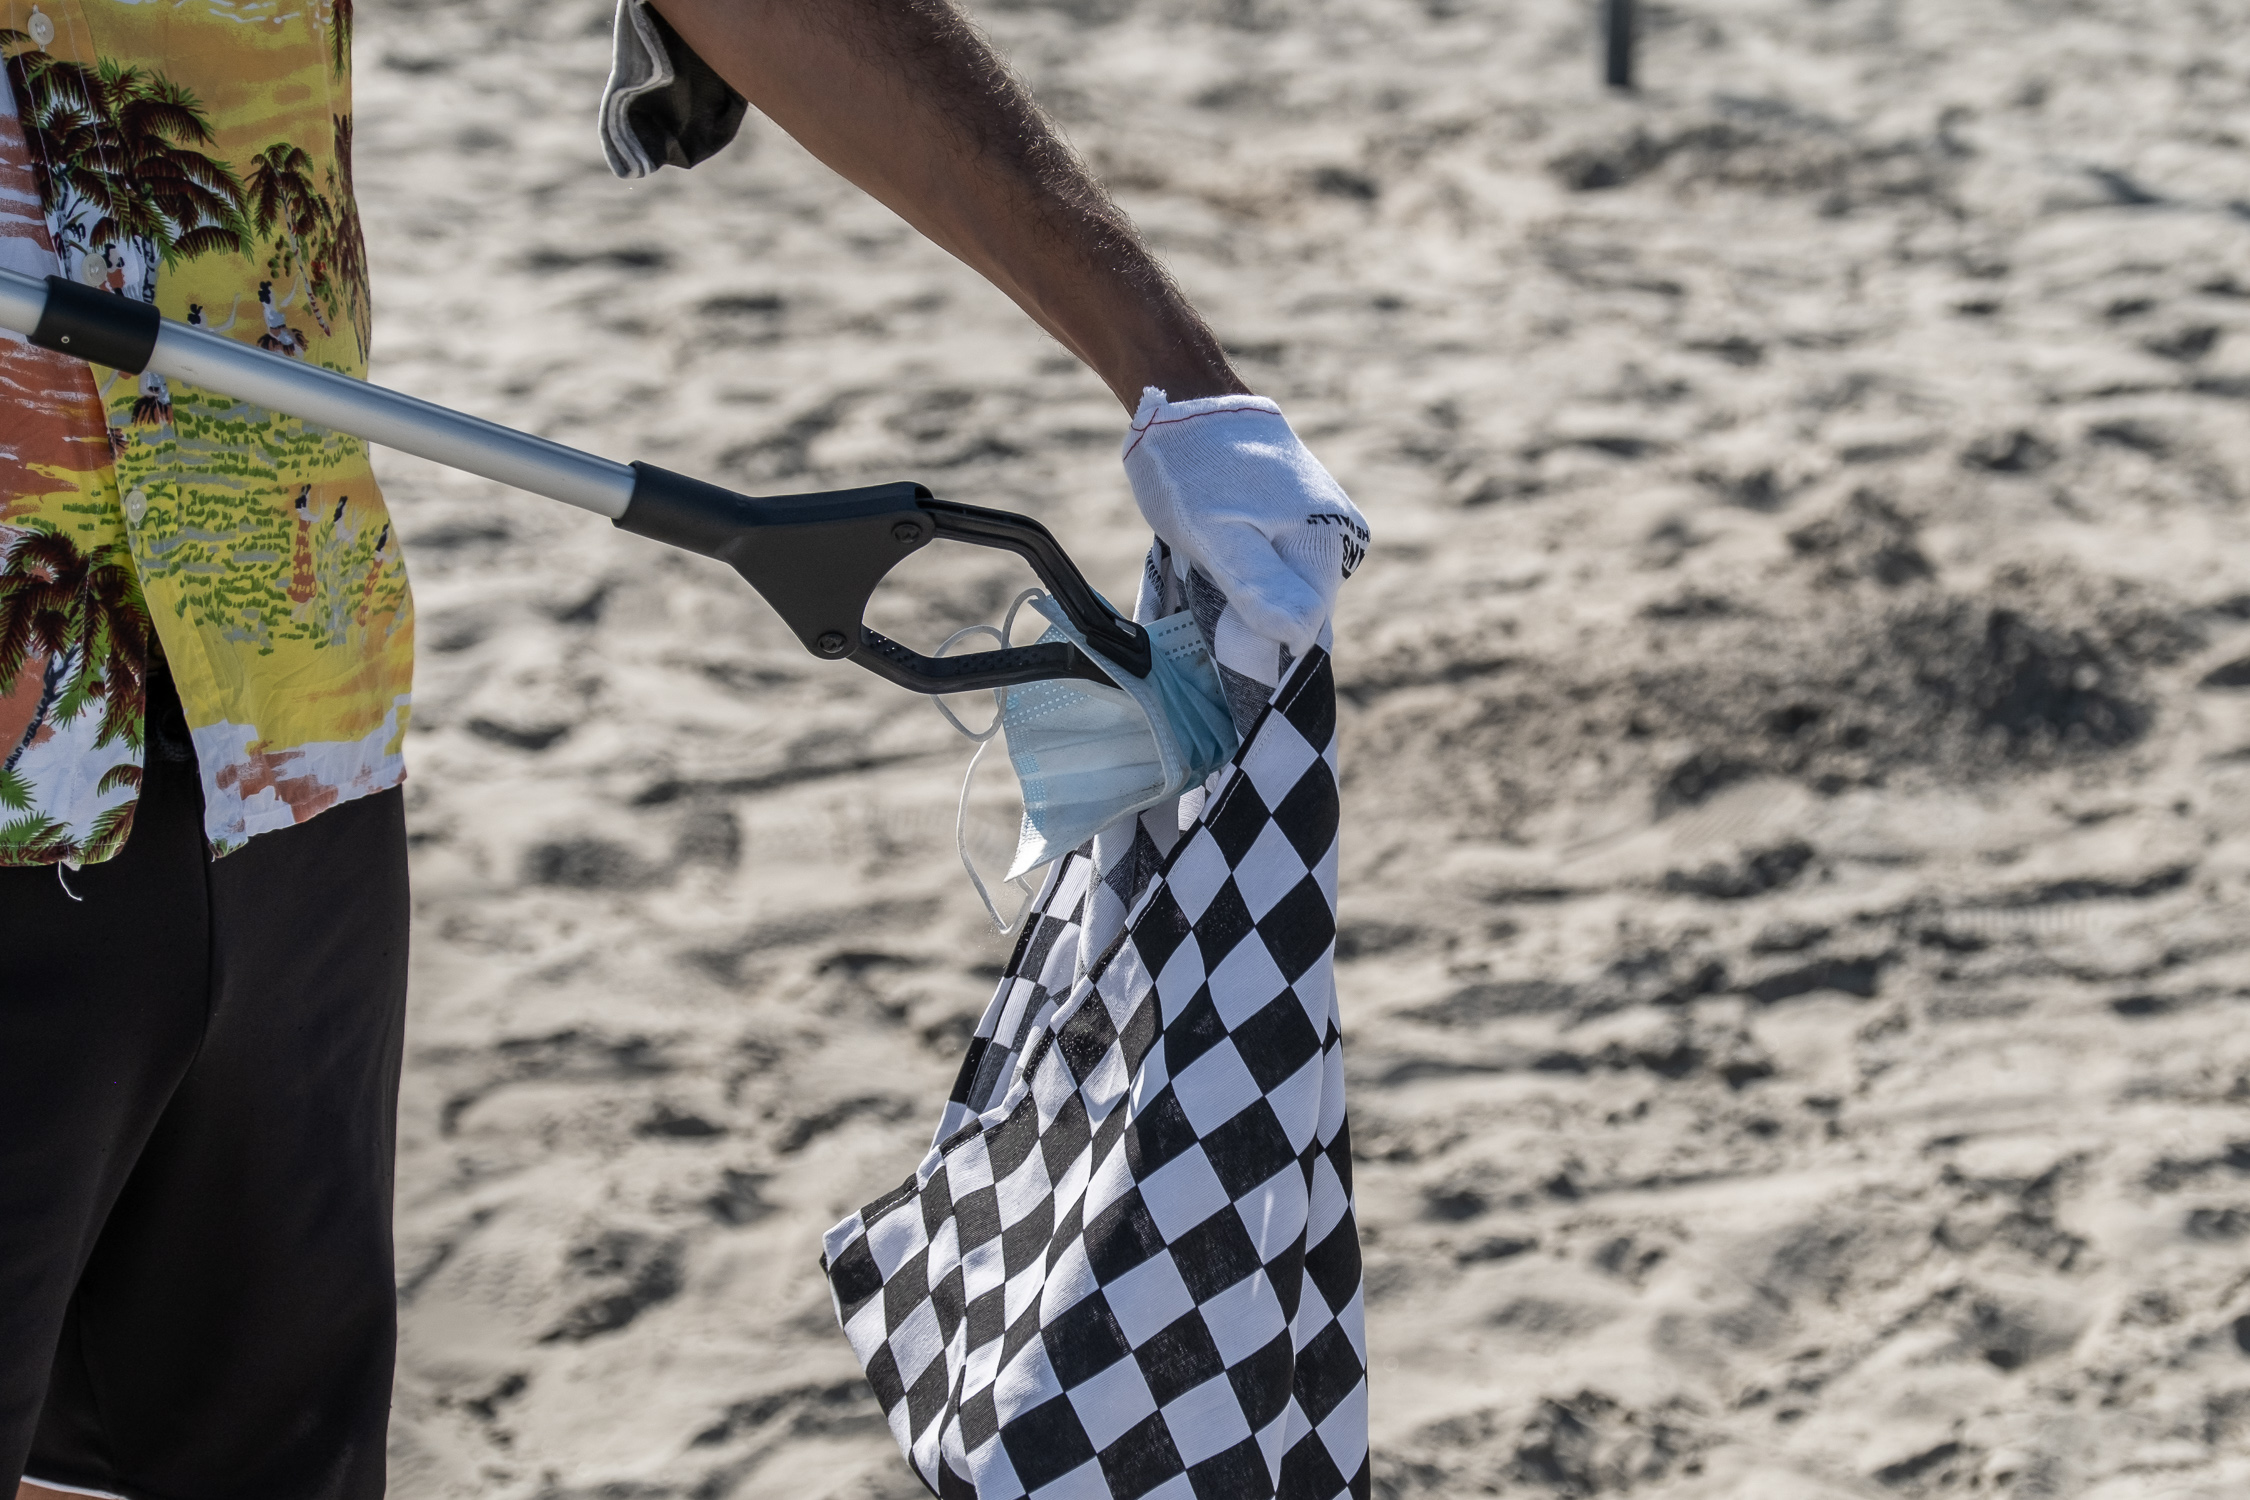 Vans Eco Theory Beach Cleaning - Report